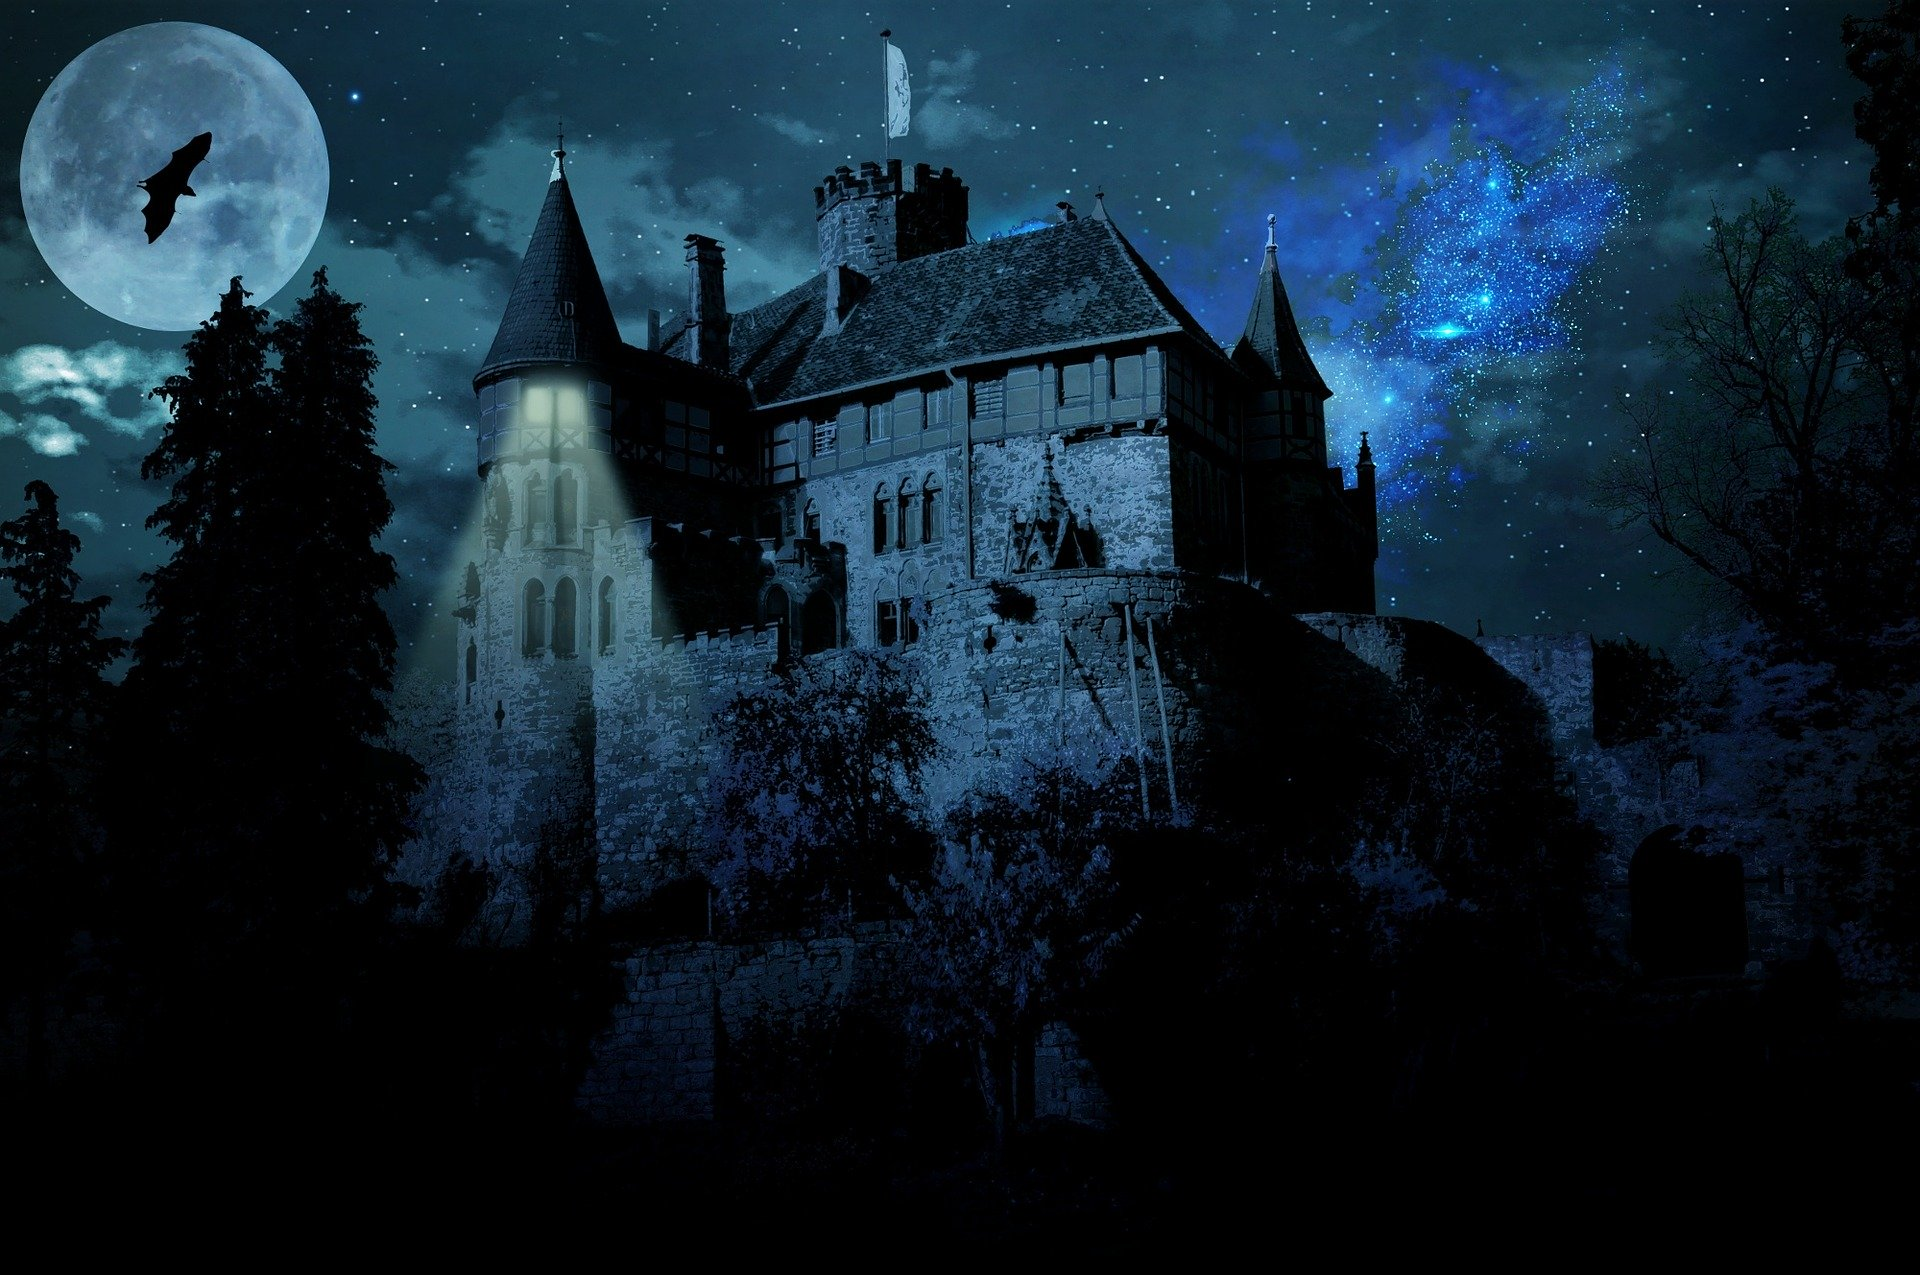 haunted-castle-1802413_1920